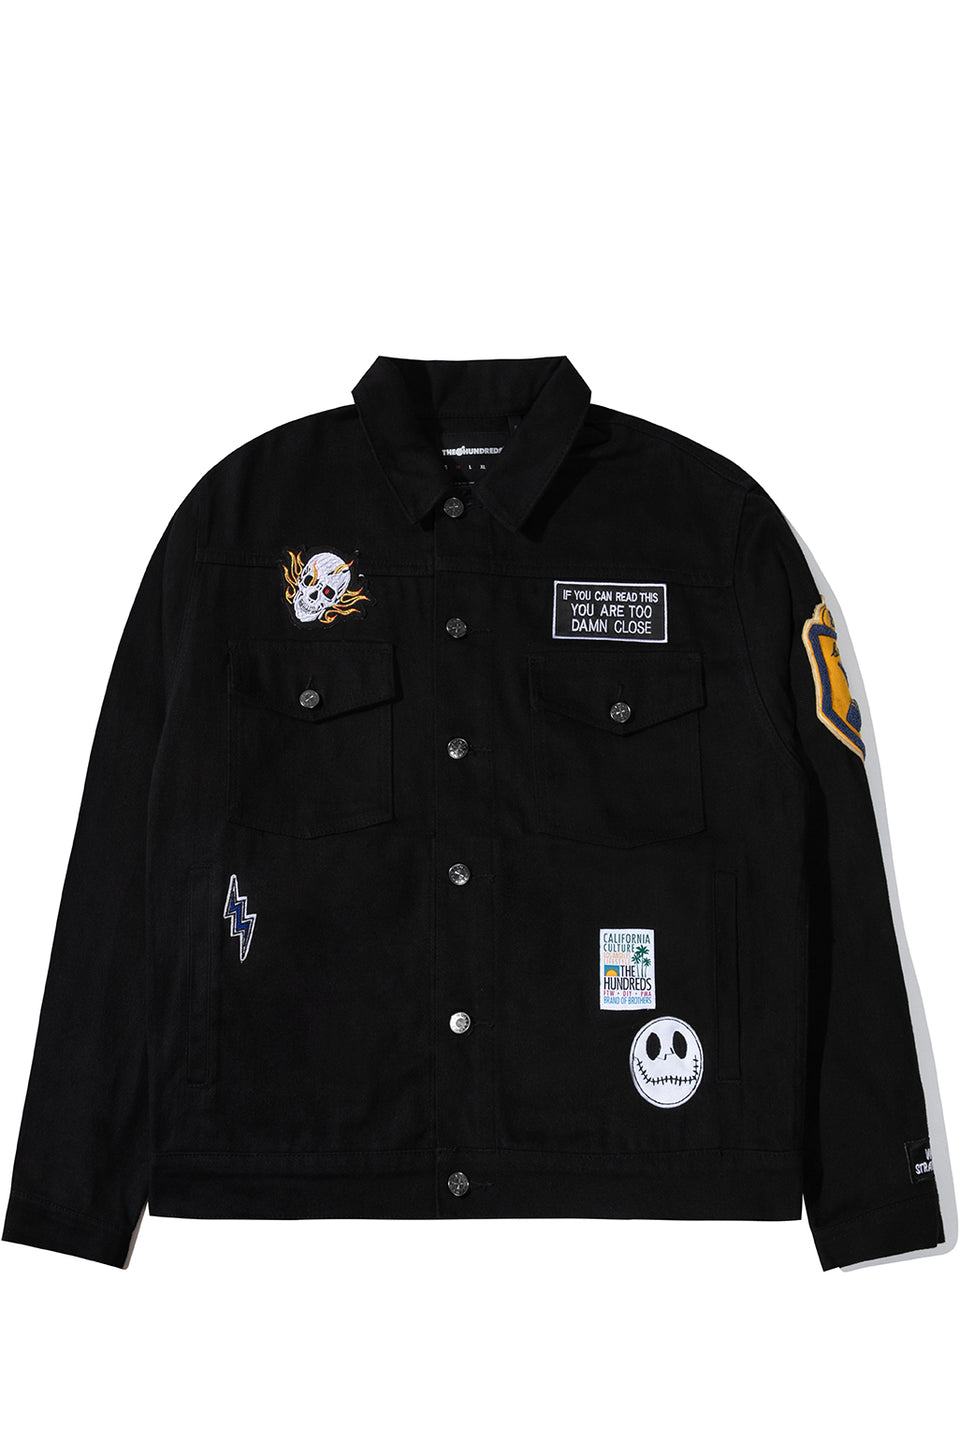 Samii Ryan Dawes Trucker Jacket